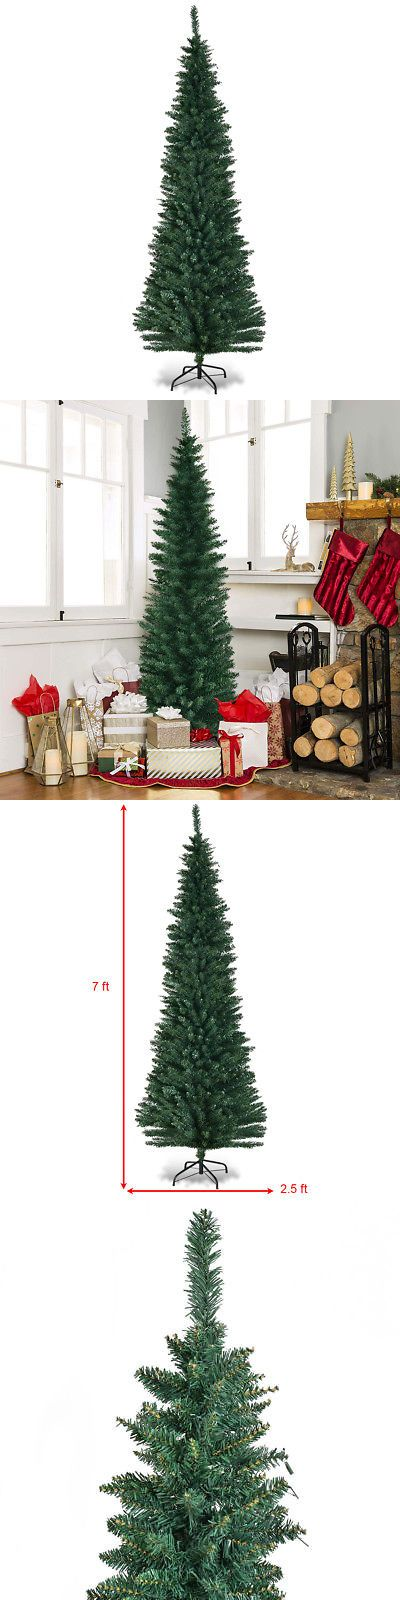 Artificial Christmas Trees 117414 7Ft Pvc Artificial Slim Pencil